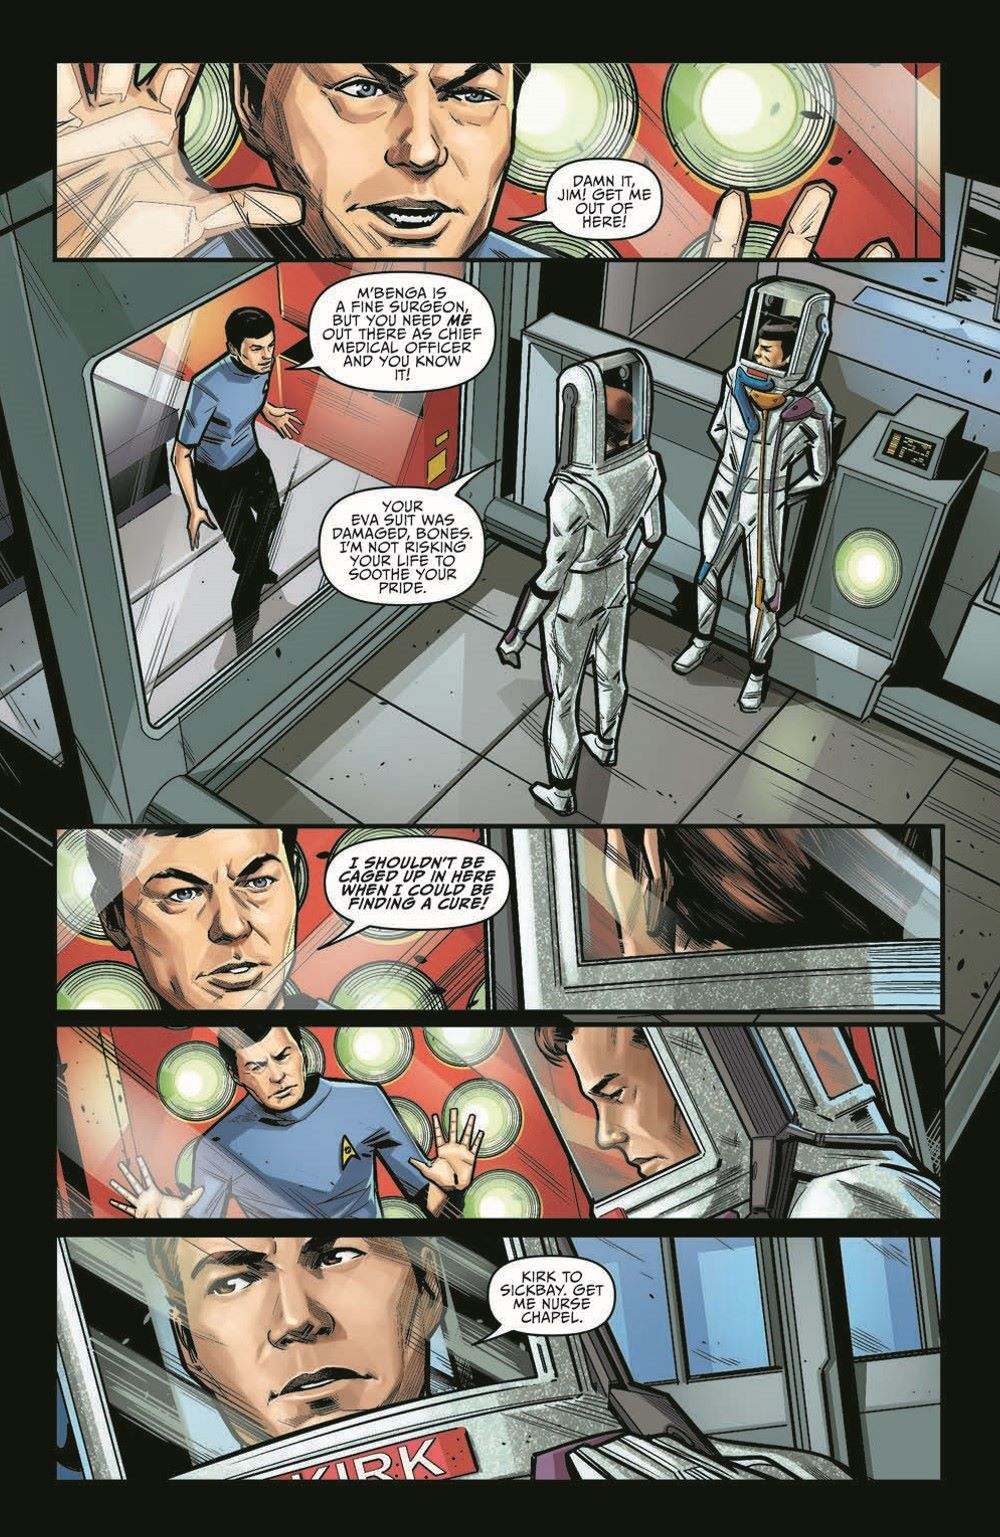 ST_YearFive19-pr-3 ComicList Previews: STAR TREK YEAR FIVE #19